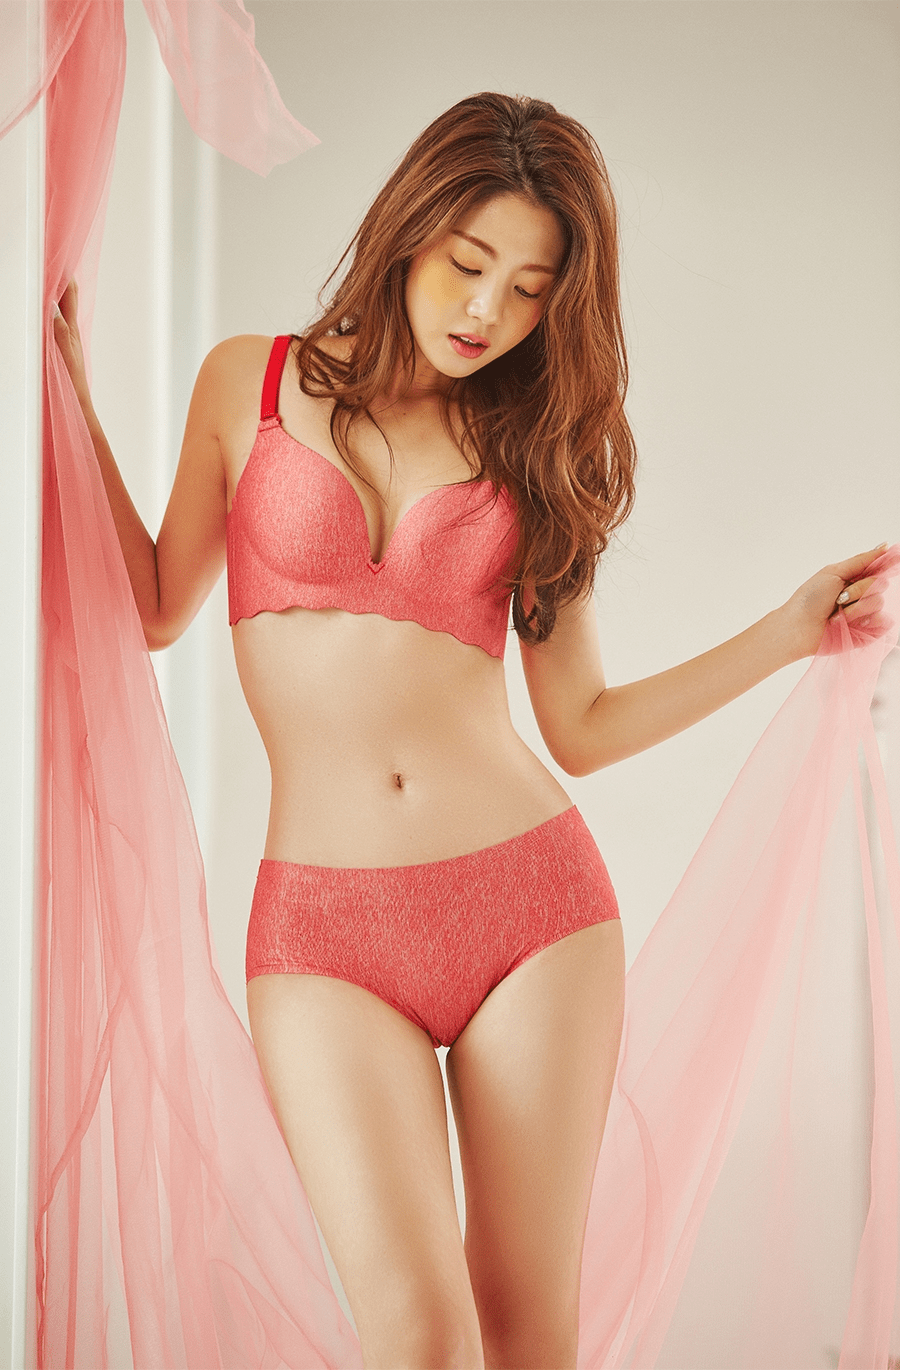 Lee Chaeeun - COME ON VINCENT - January 2019 Lingerie Studioshoot (full set in comments)